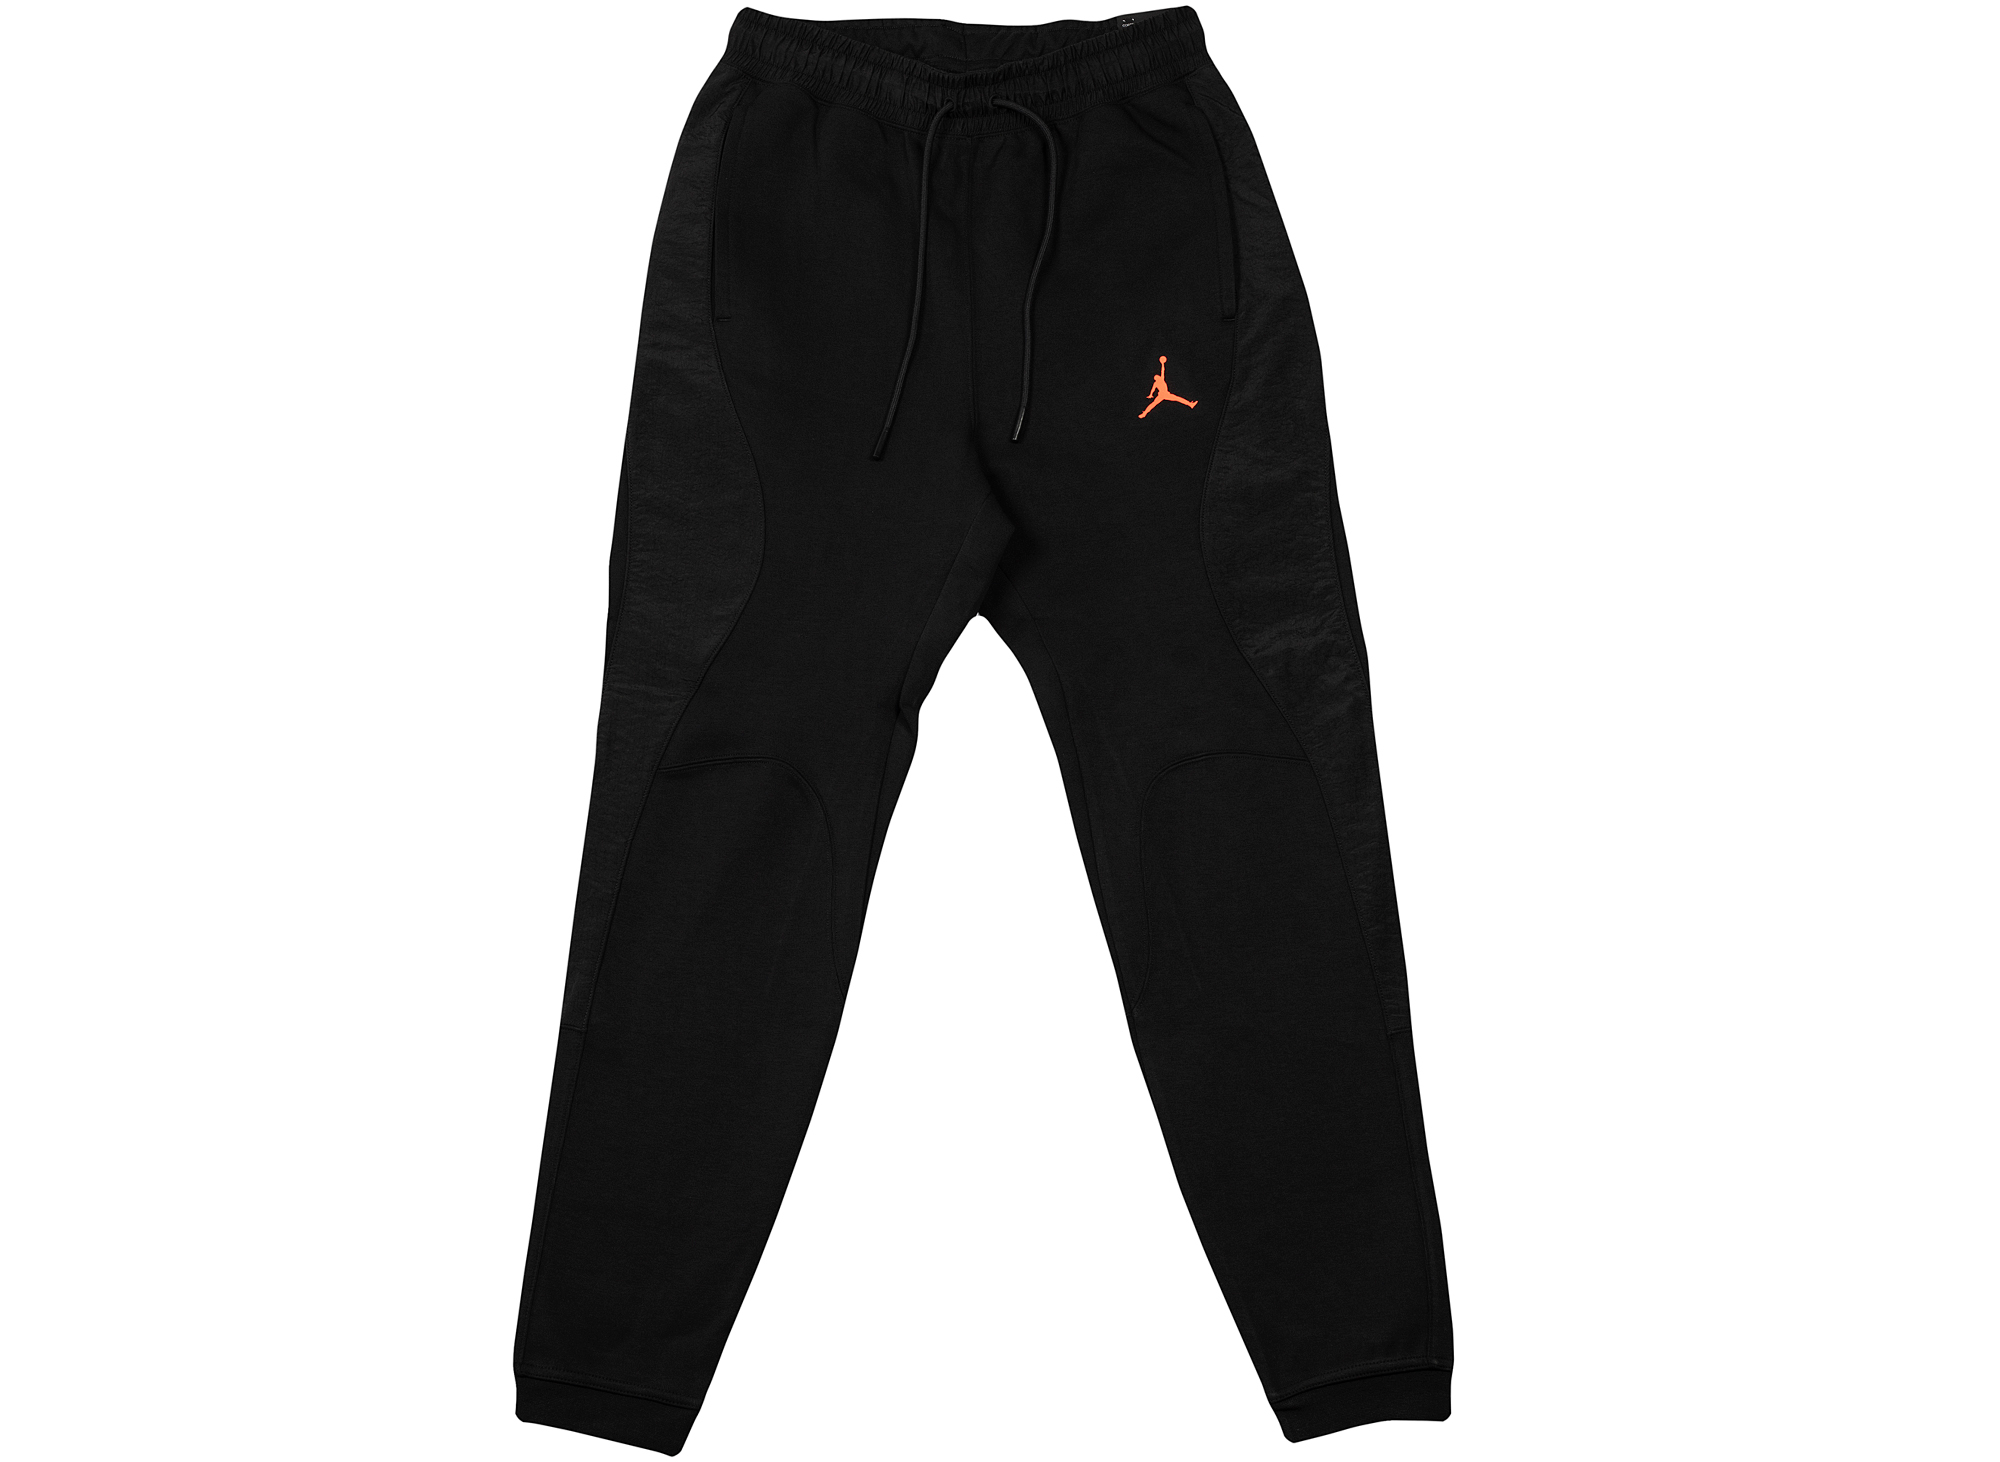 Jordan 23 Engineered Pants in Black